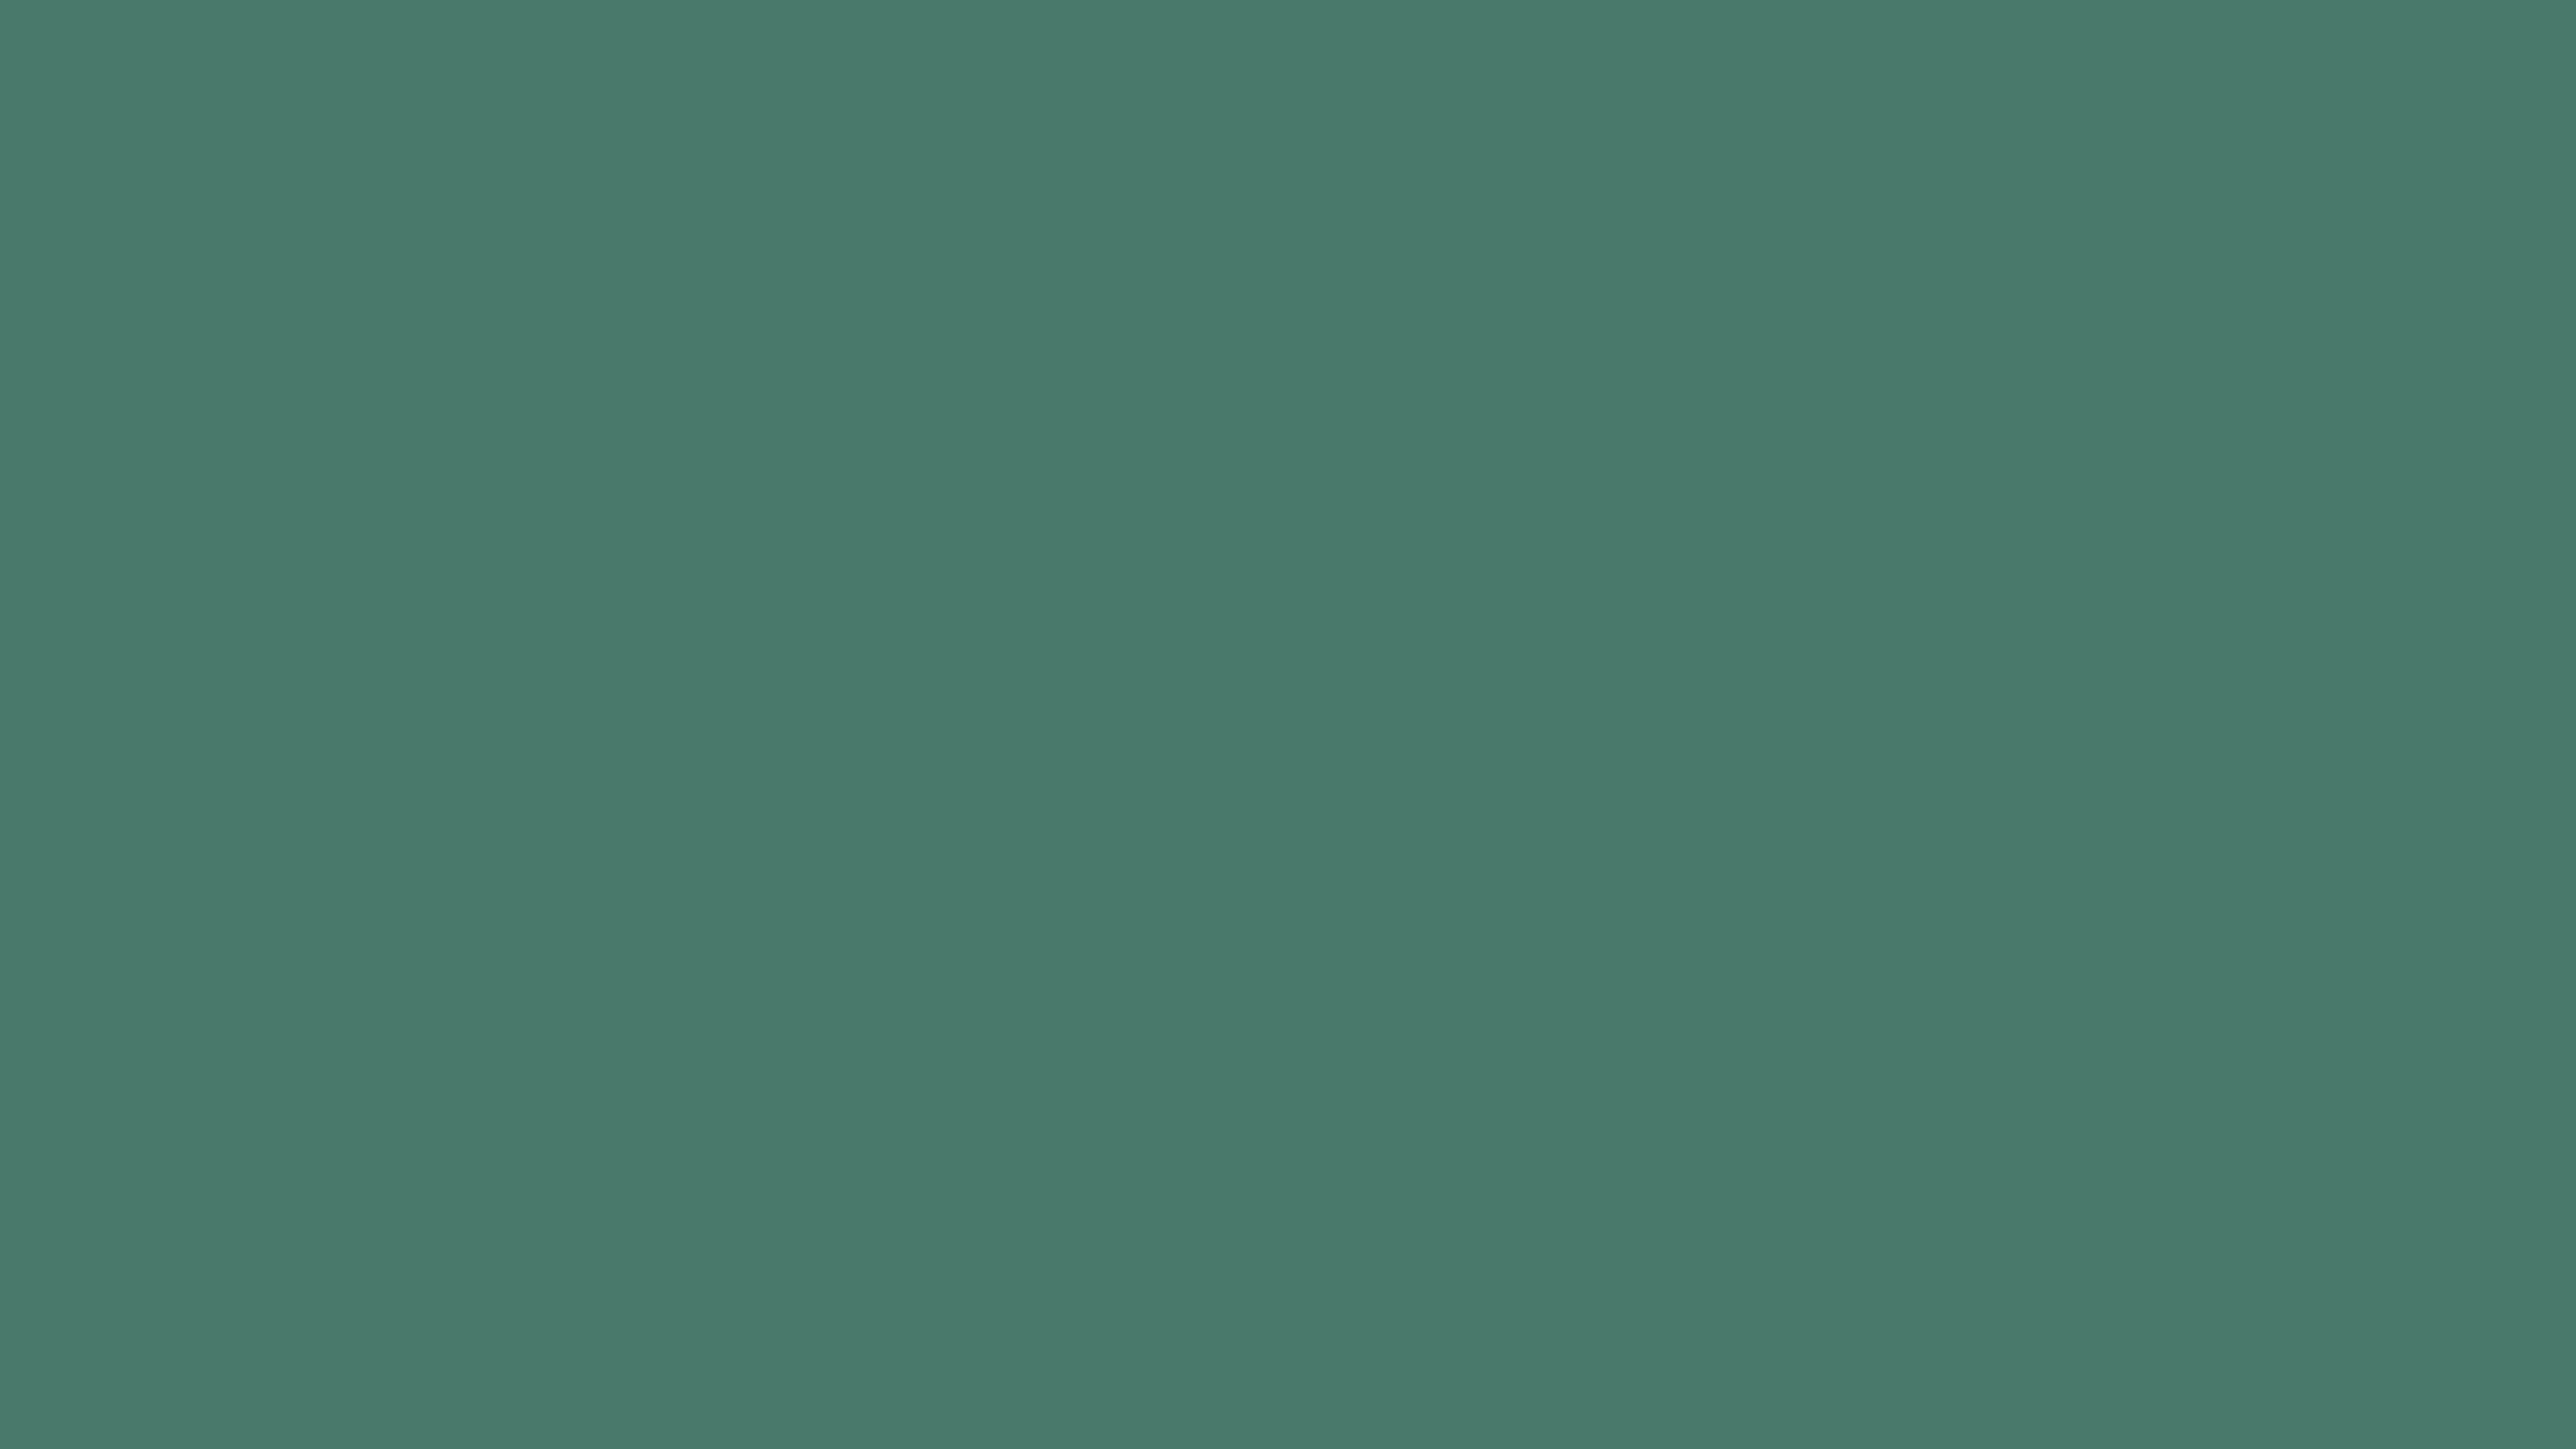 3840x2160 Hookers Green Solid Color Background